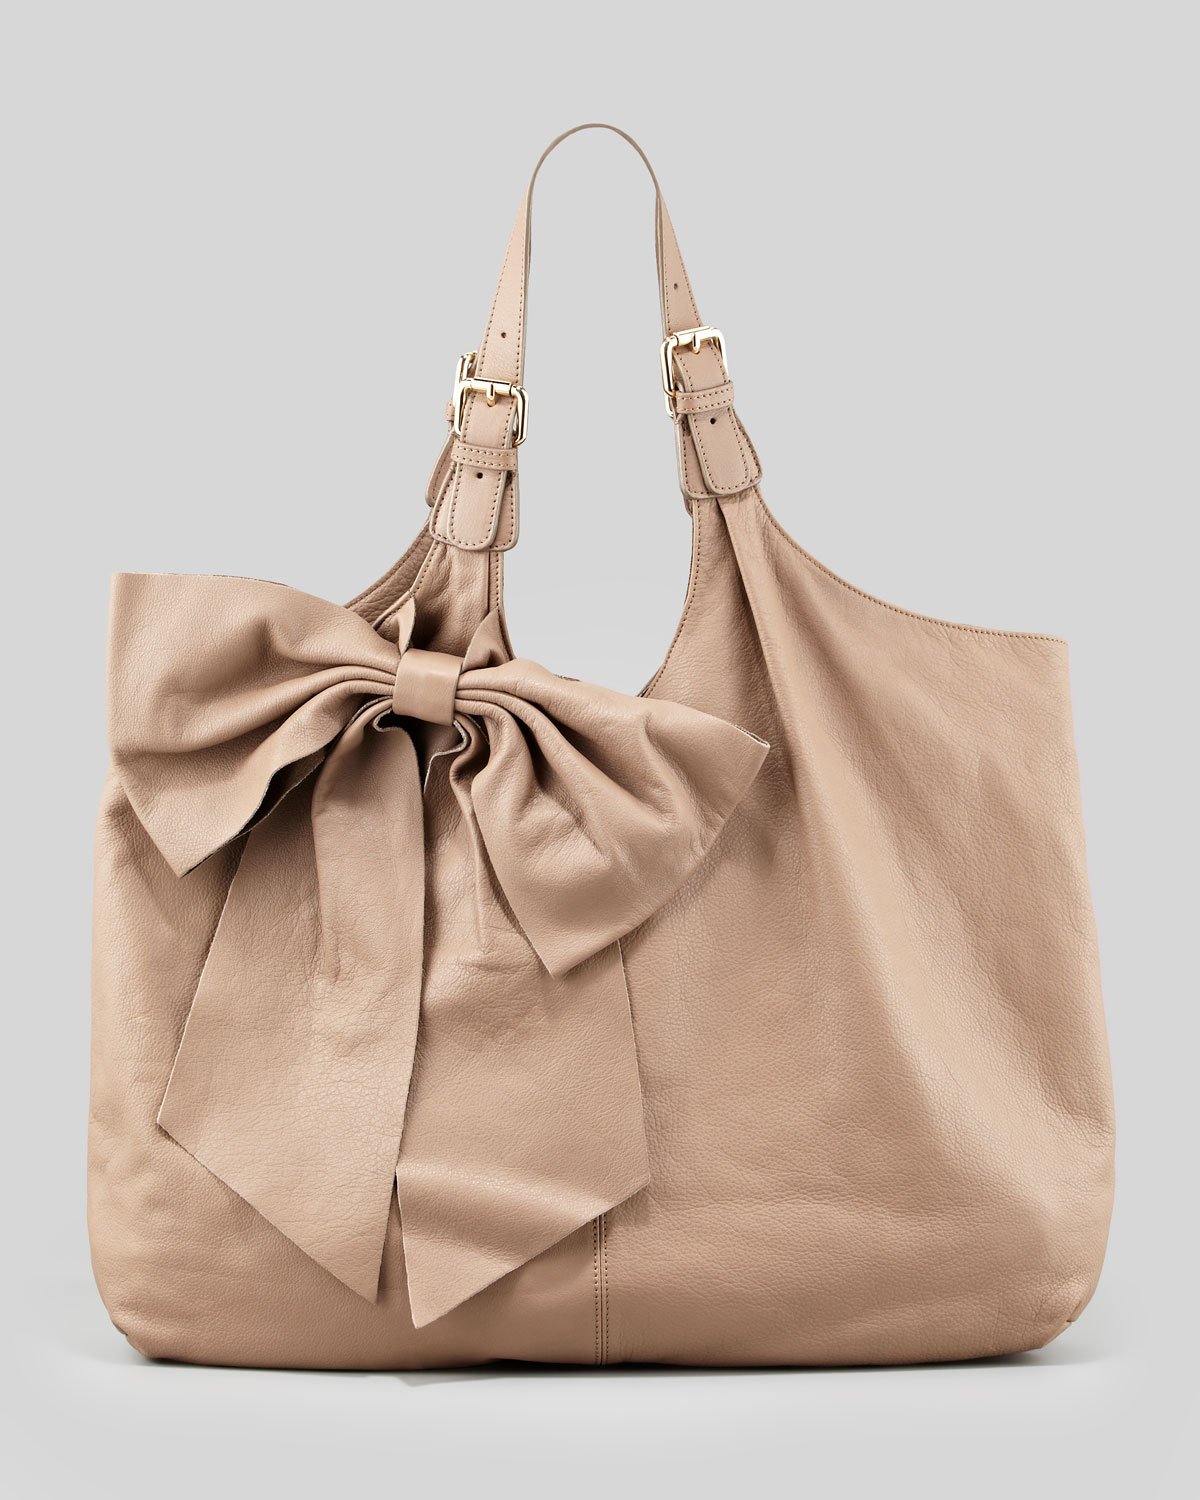 Red valentino Classic Bow Hobo Bag Taupe in Brown | Lyst